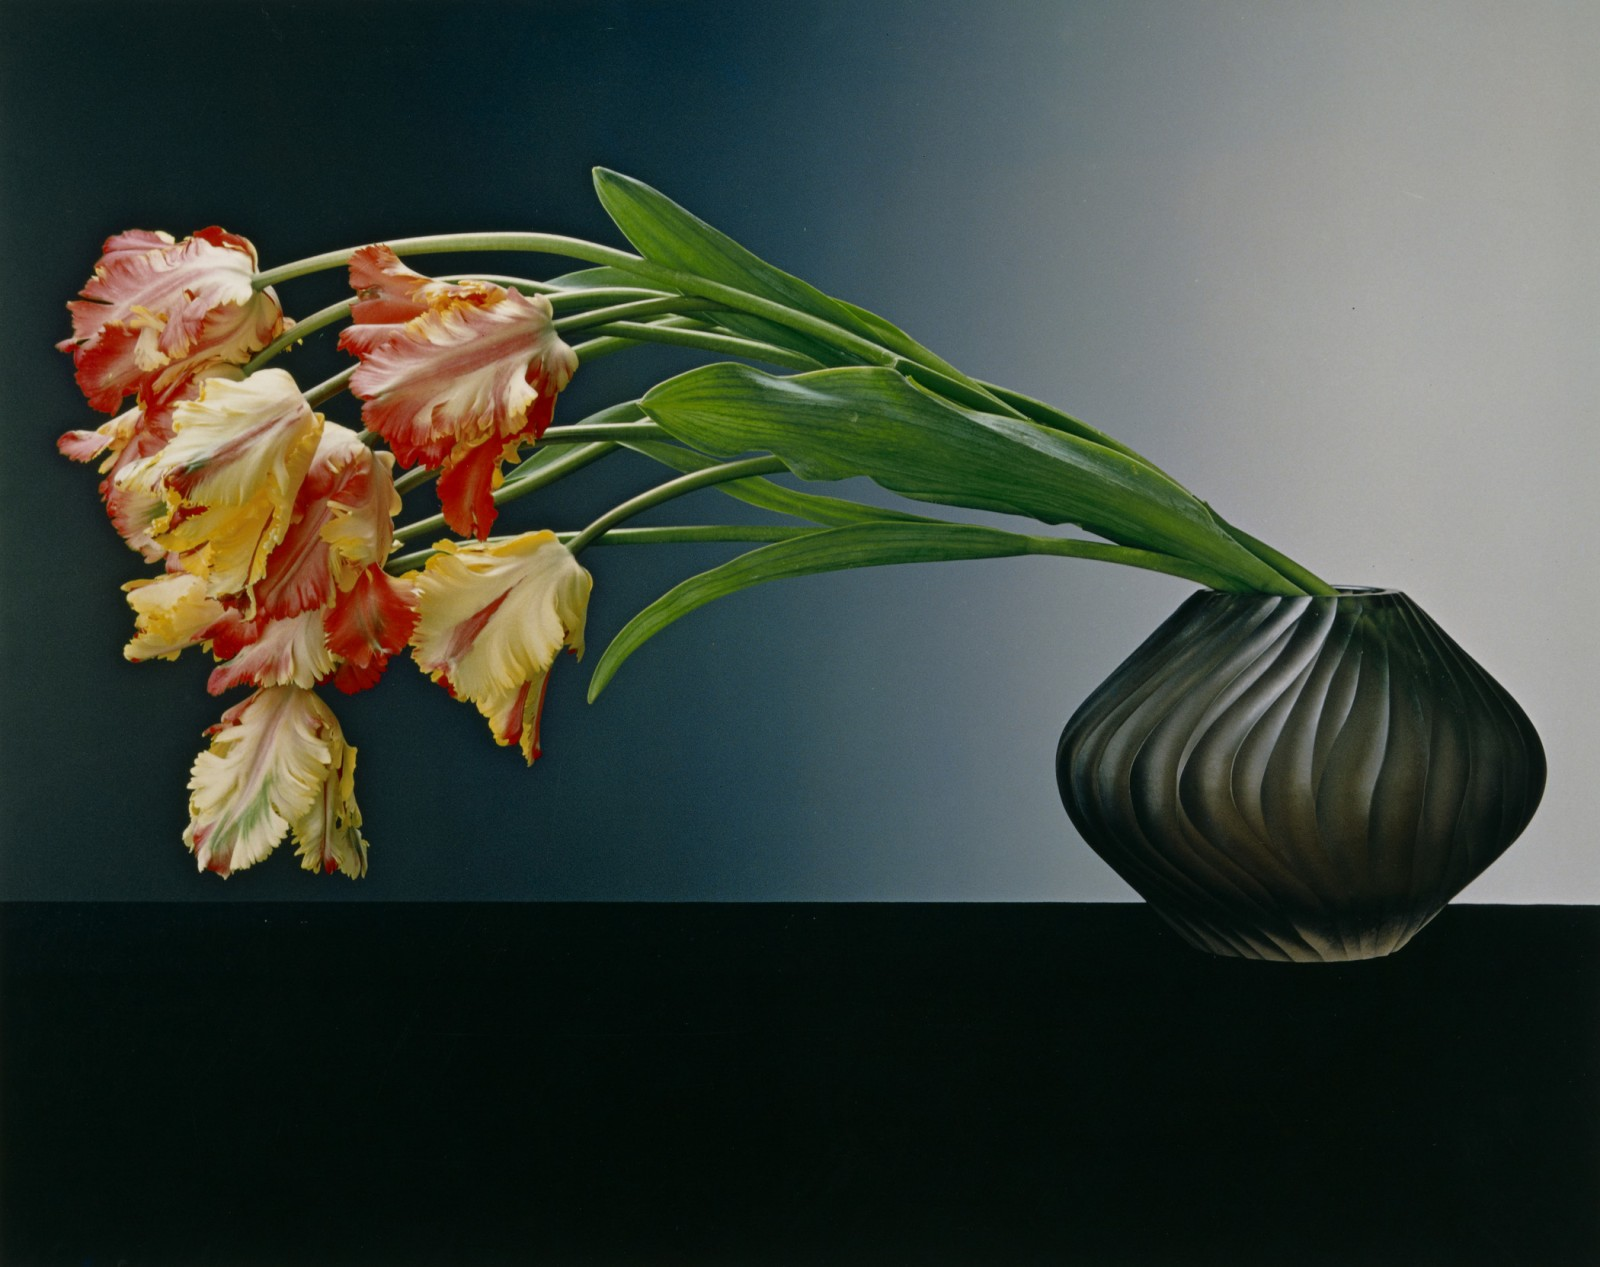 Image: Robert Mapplethorpe, Parrot Tulips, 1988